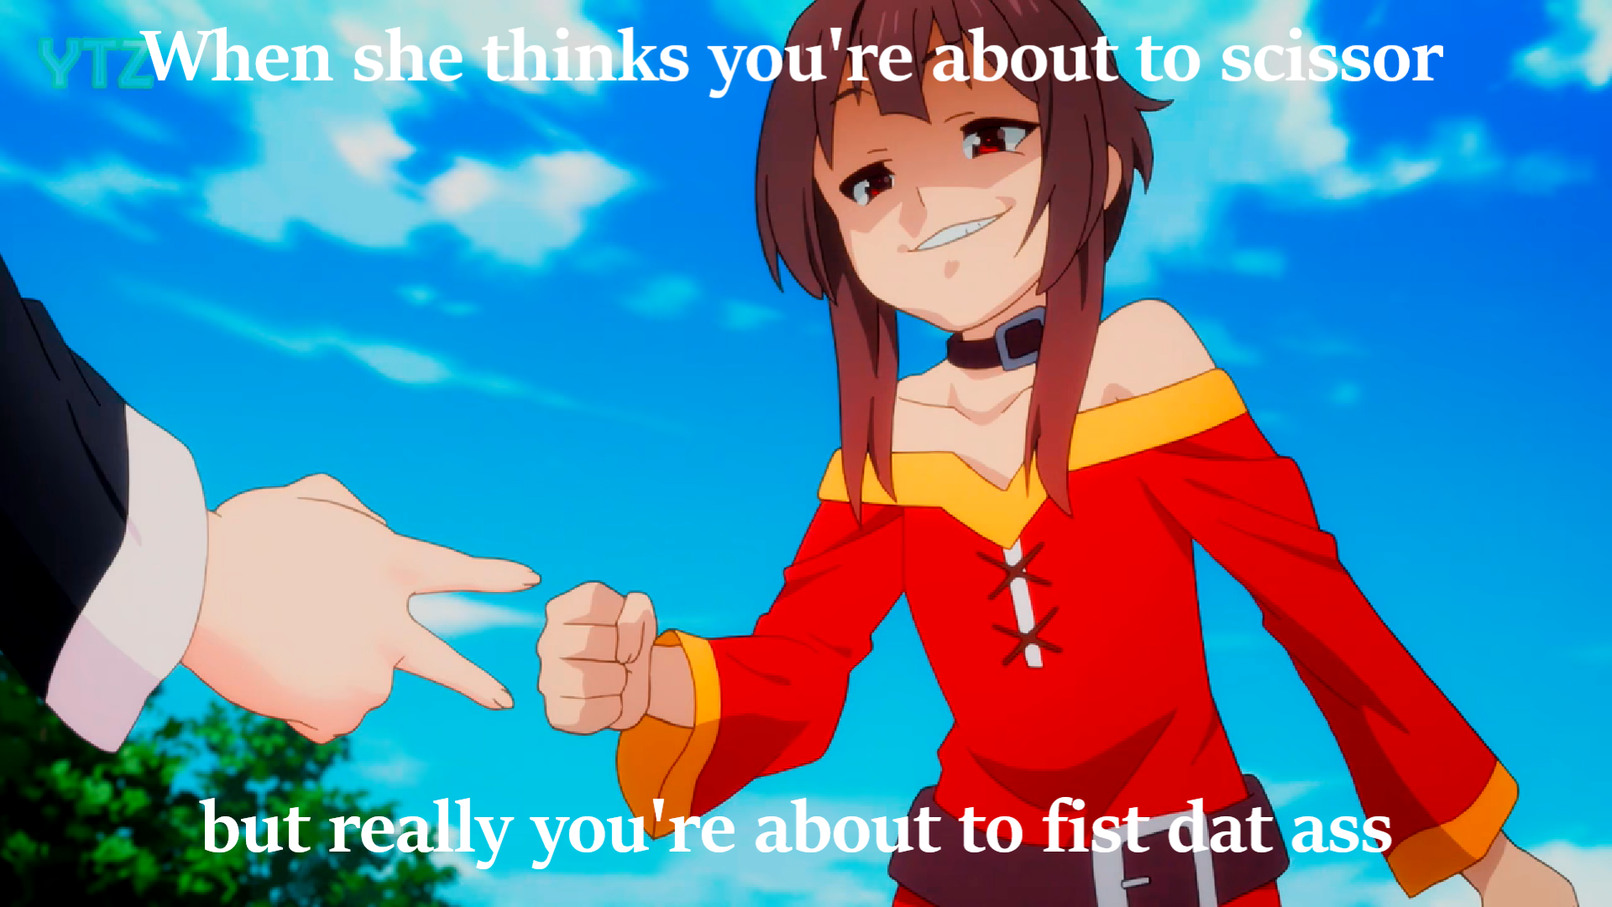 Megumin is best girl - meme